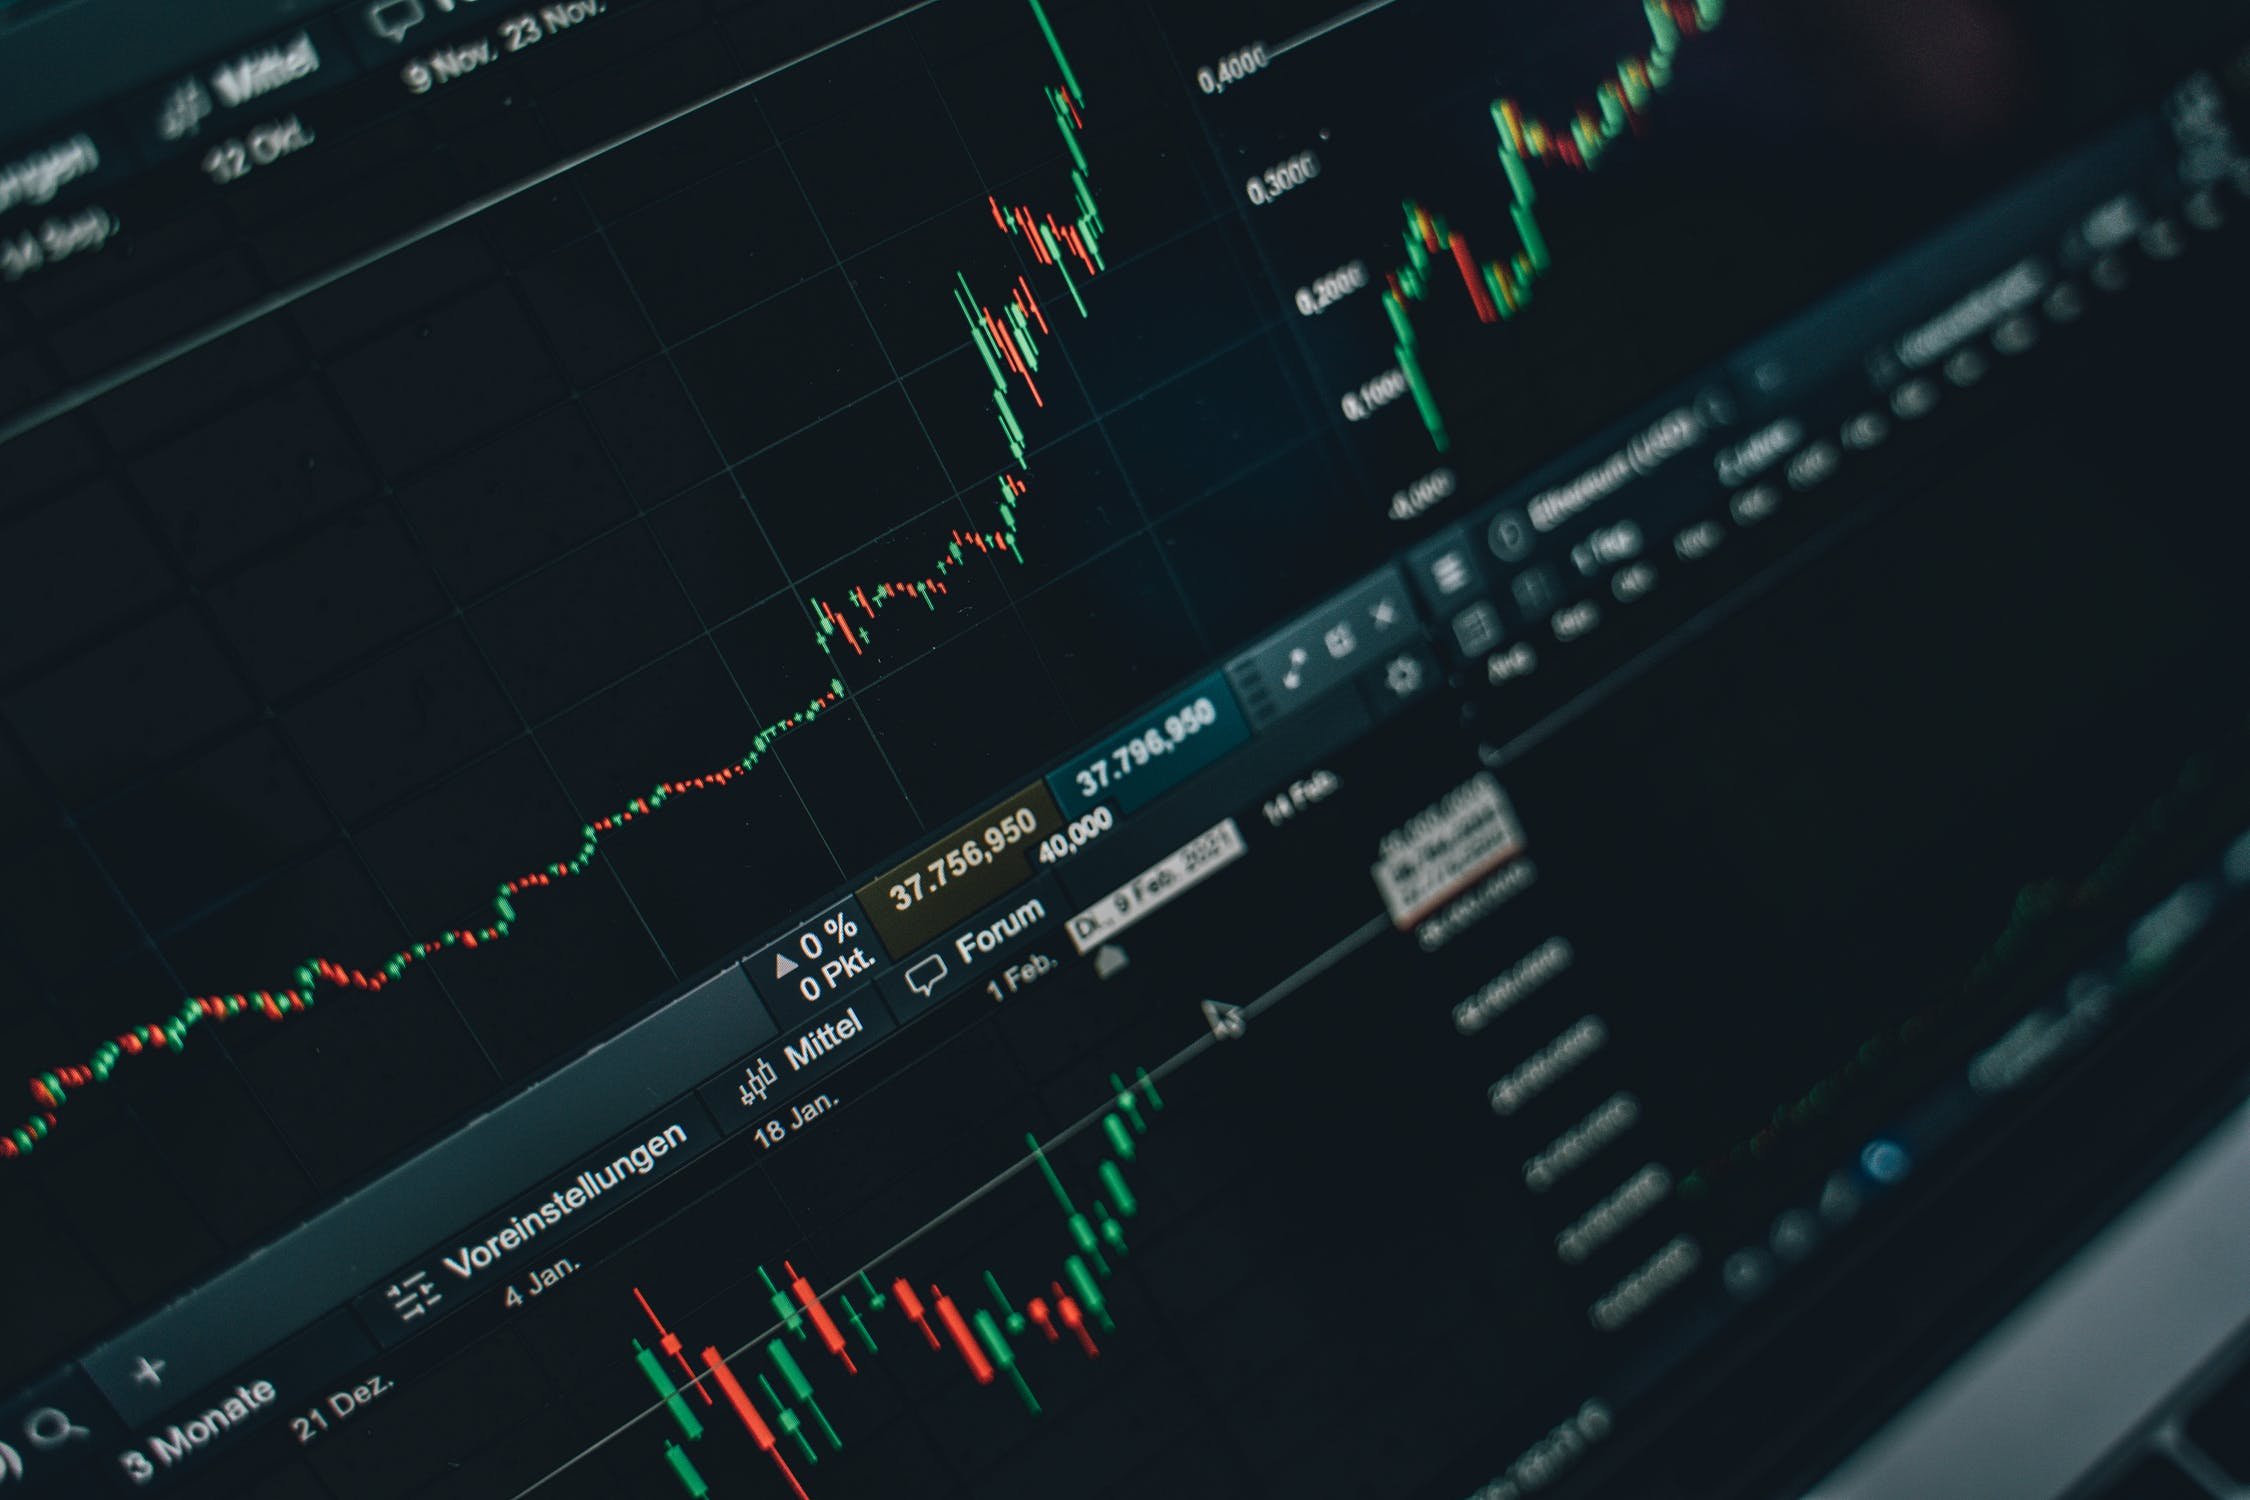 Currency trading in 2021 despite global pandemic